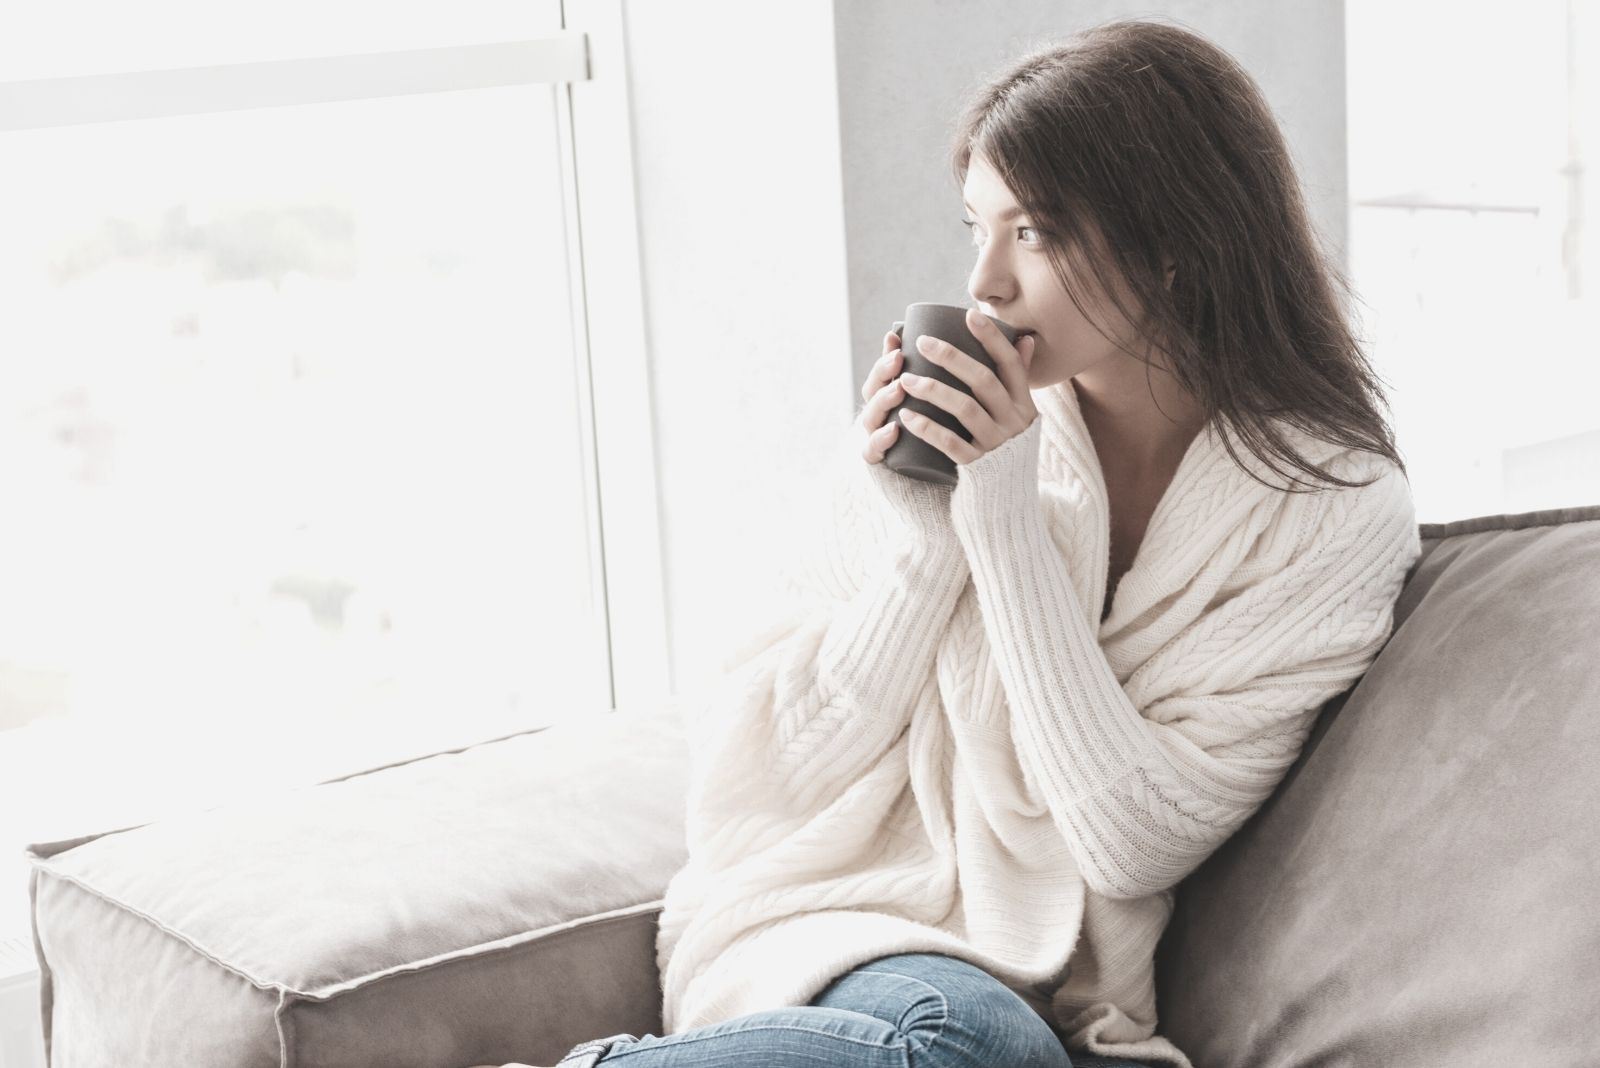 pensive pretty young woman sipping on her coffee early in the morning lounging in the couch near the windows